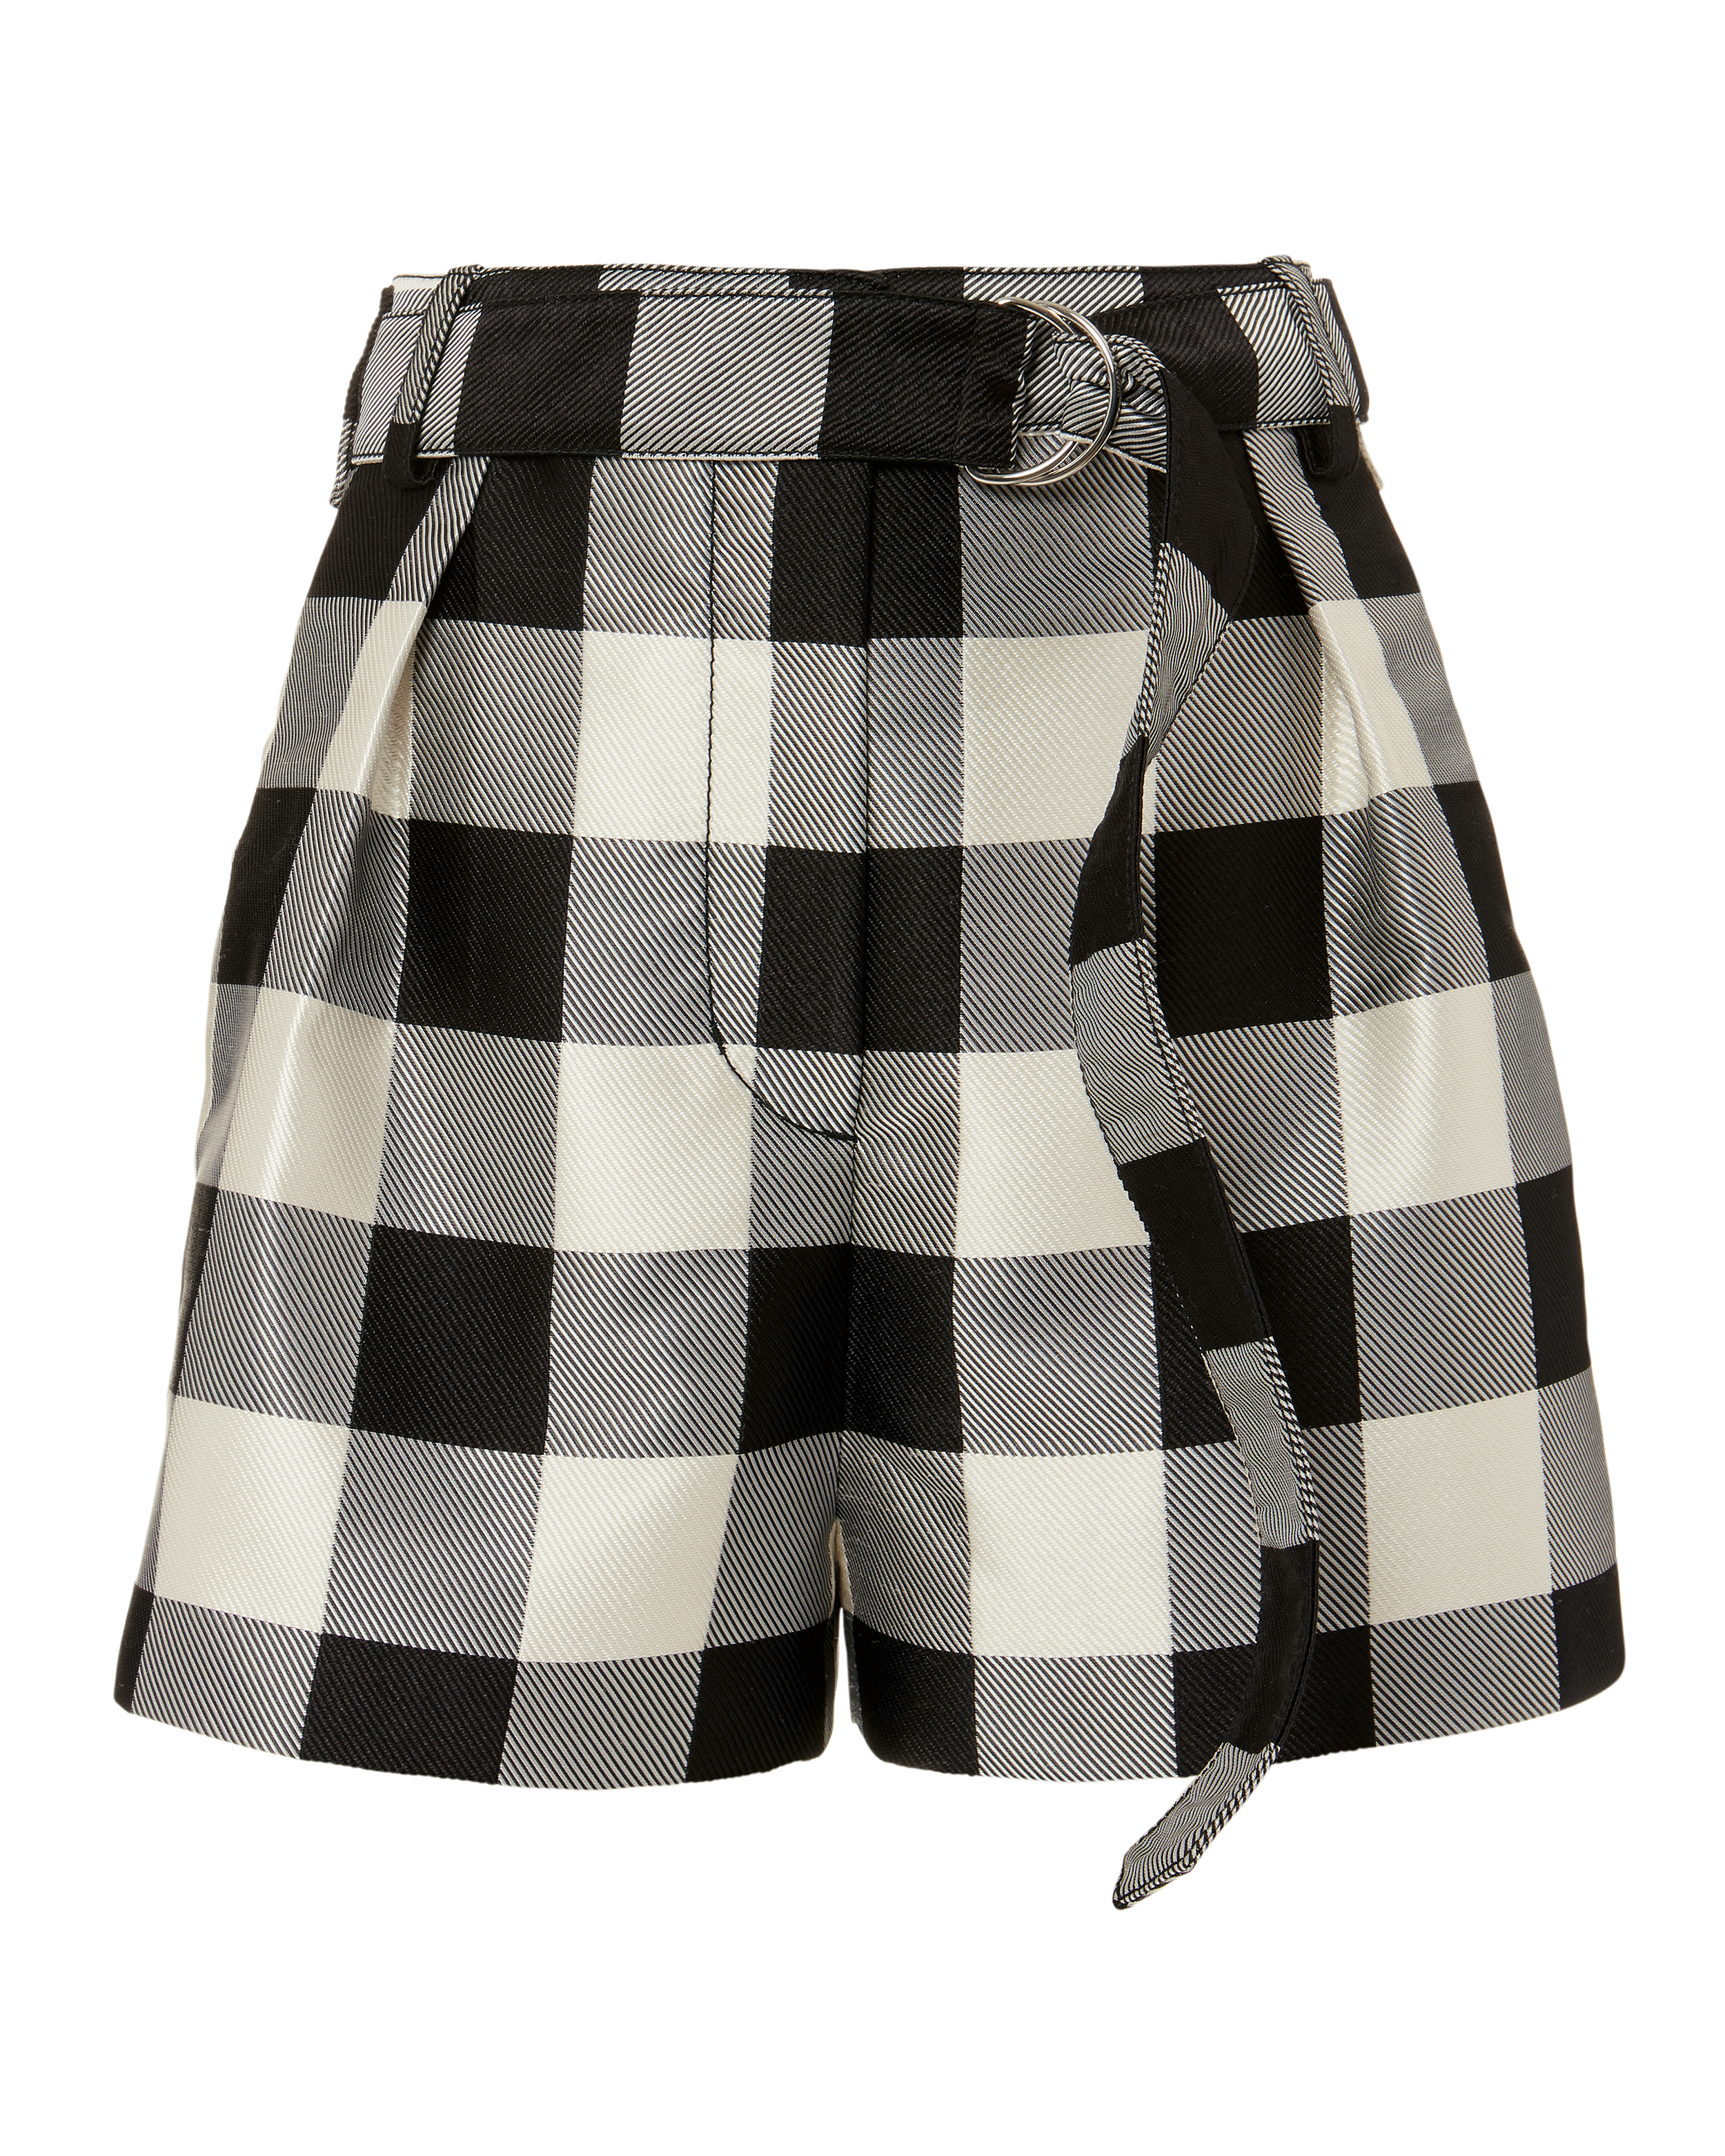 PHILLIP LIM Gingham Belted Military Shorts